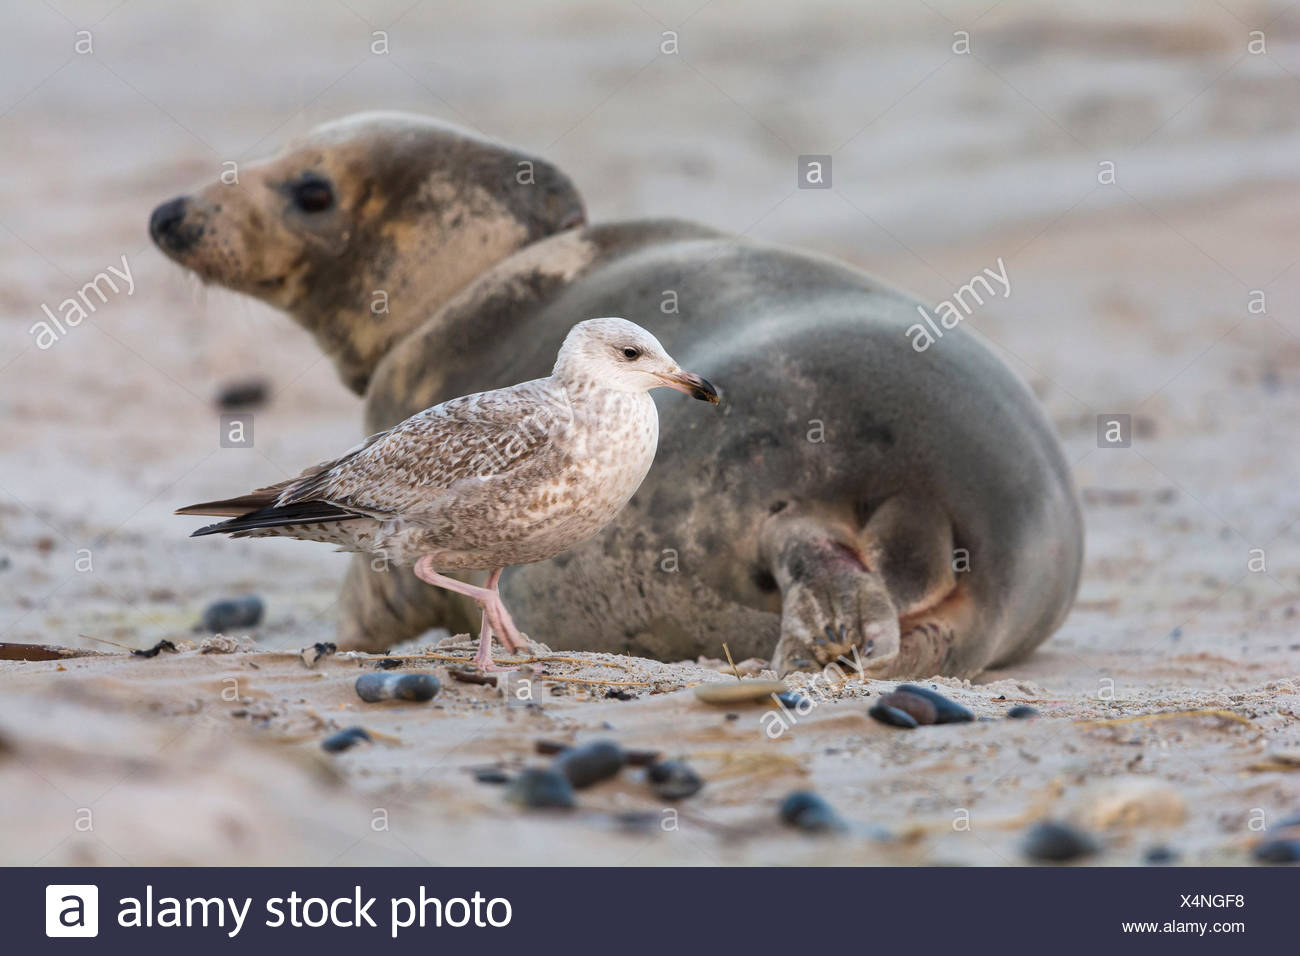 Grey Seal, Halichoerus grypus, Female, Juvenile Herring Gull, Larus argentatus, Lurking on Afterbirth, Europe Stock Photo